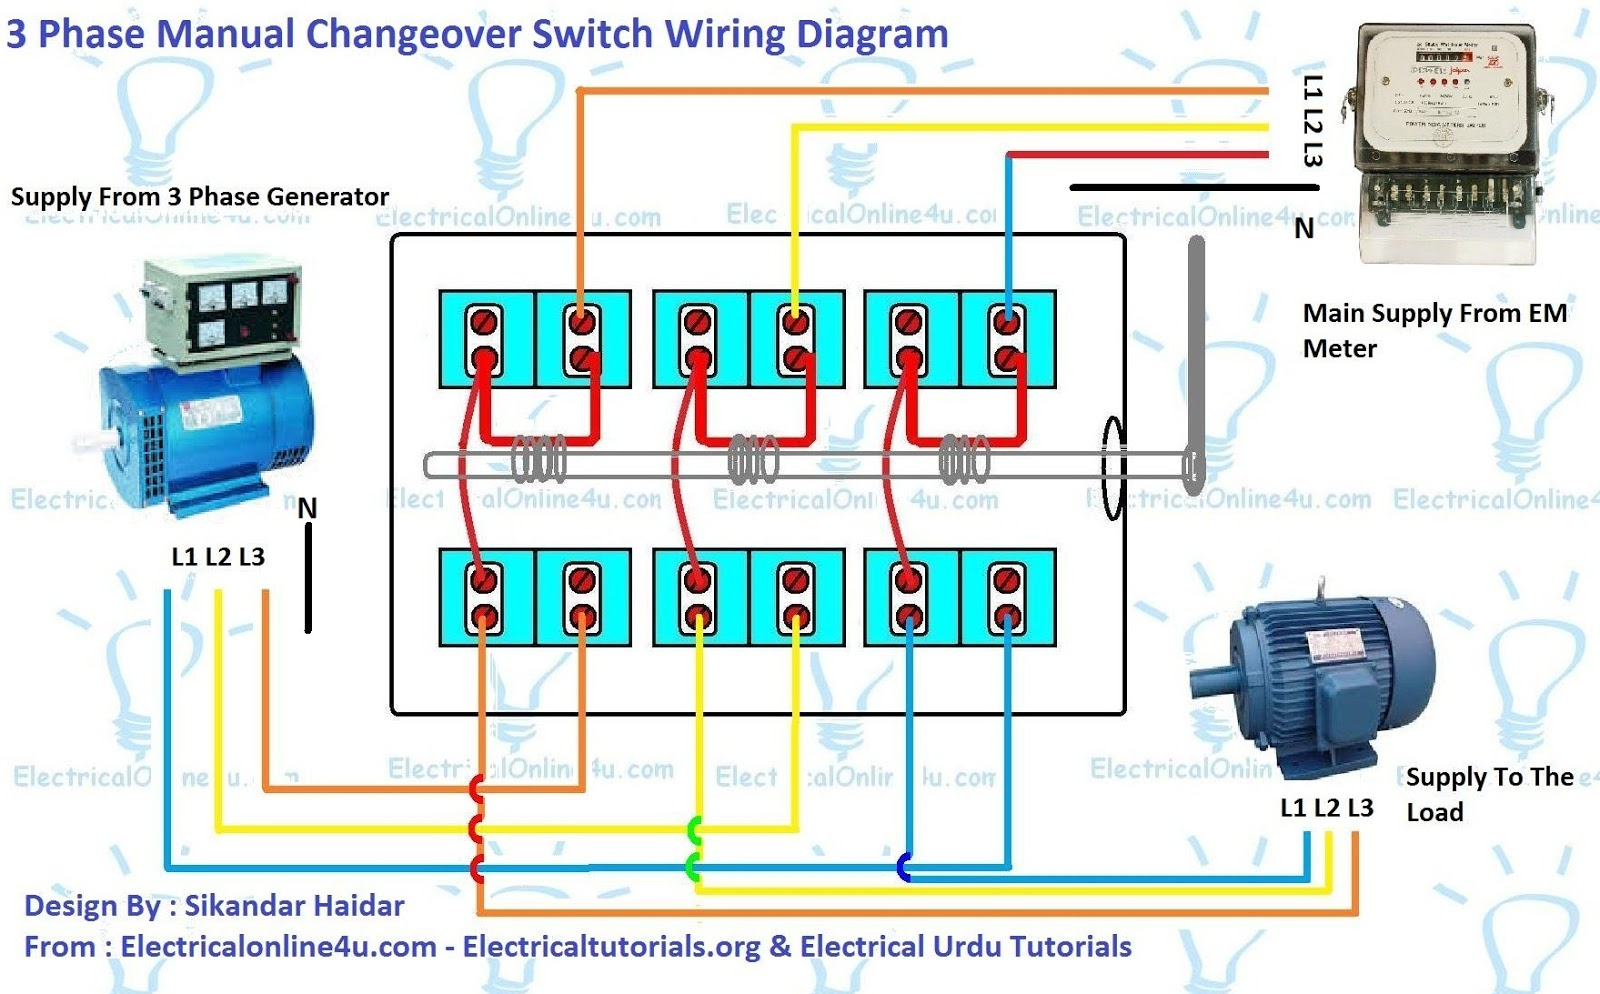 3%2Bphase%2Bmanual%2Bchangeover%2Bswitch%2Bwiring%2Bdiagram 3 phase manual changeover switch wiring diagram for generator 3 phase generator wiring diagram at couponss.co